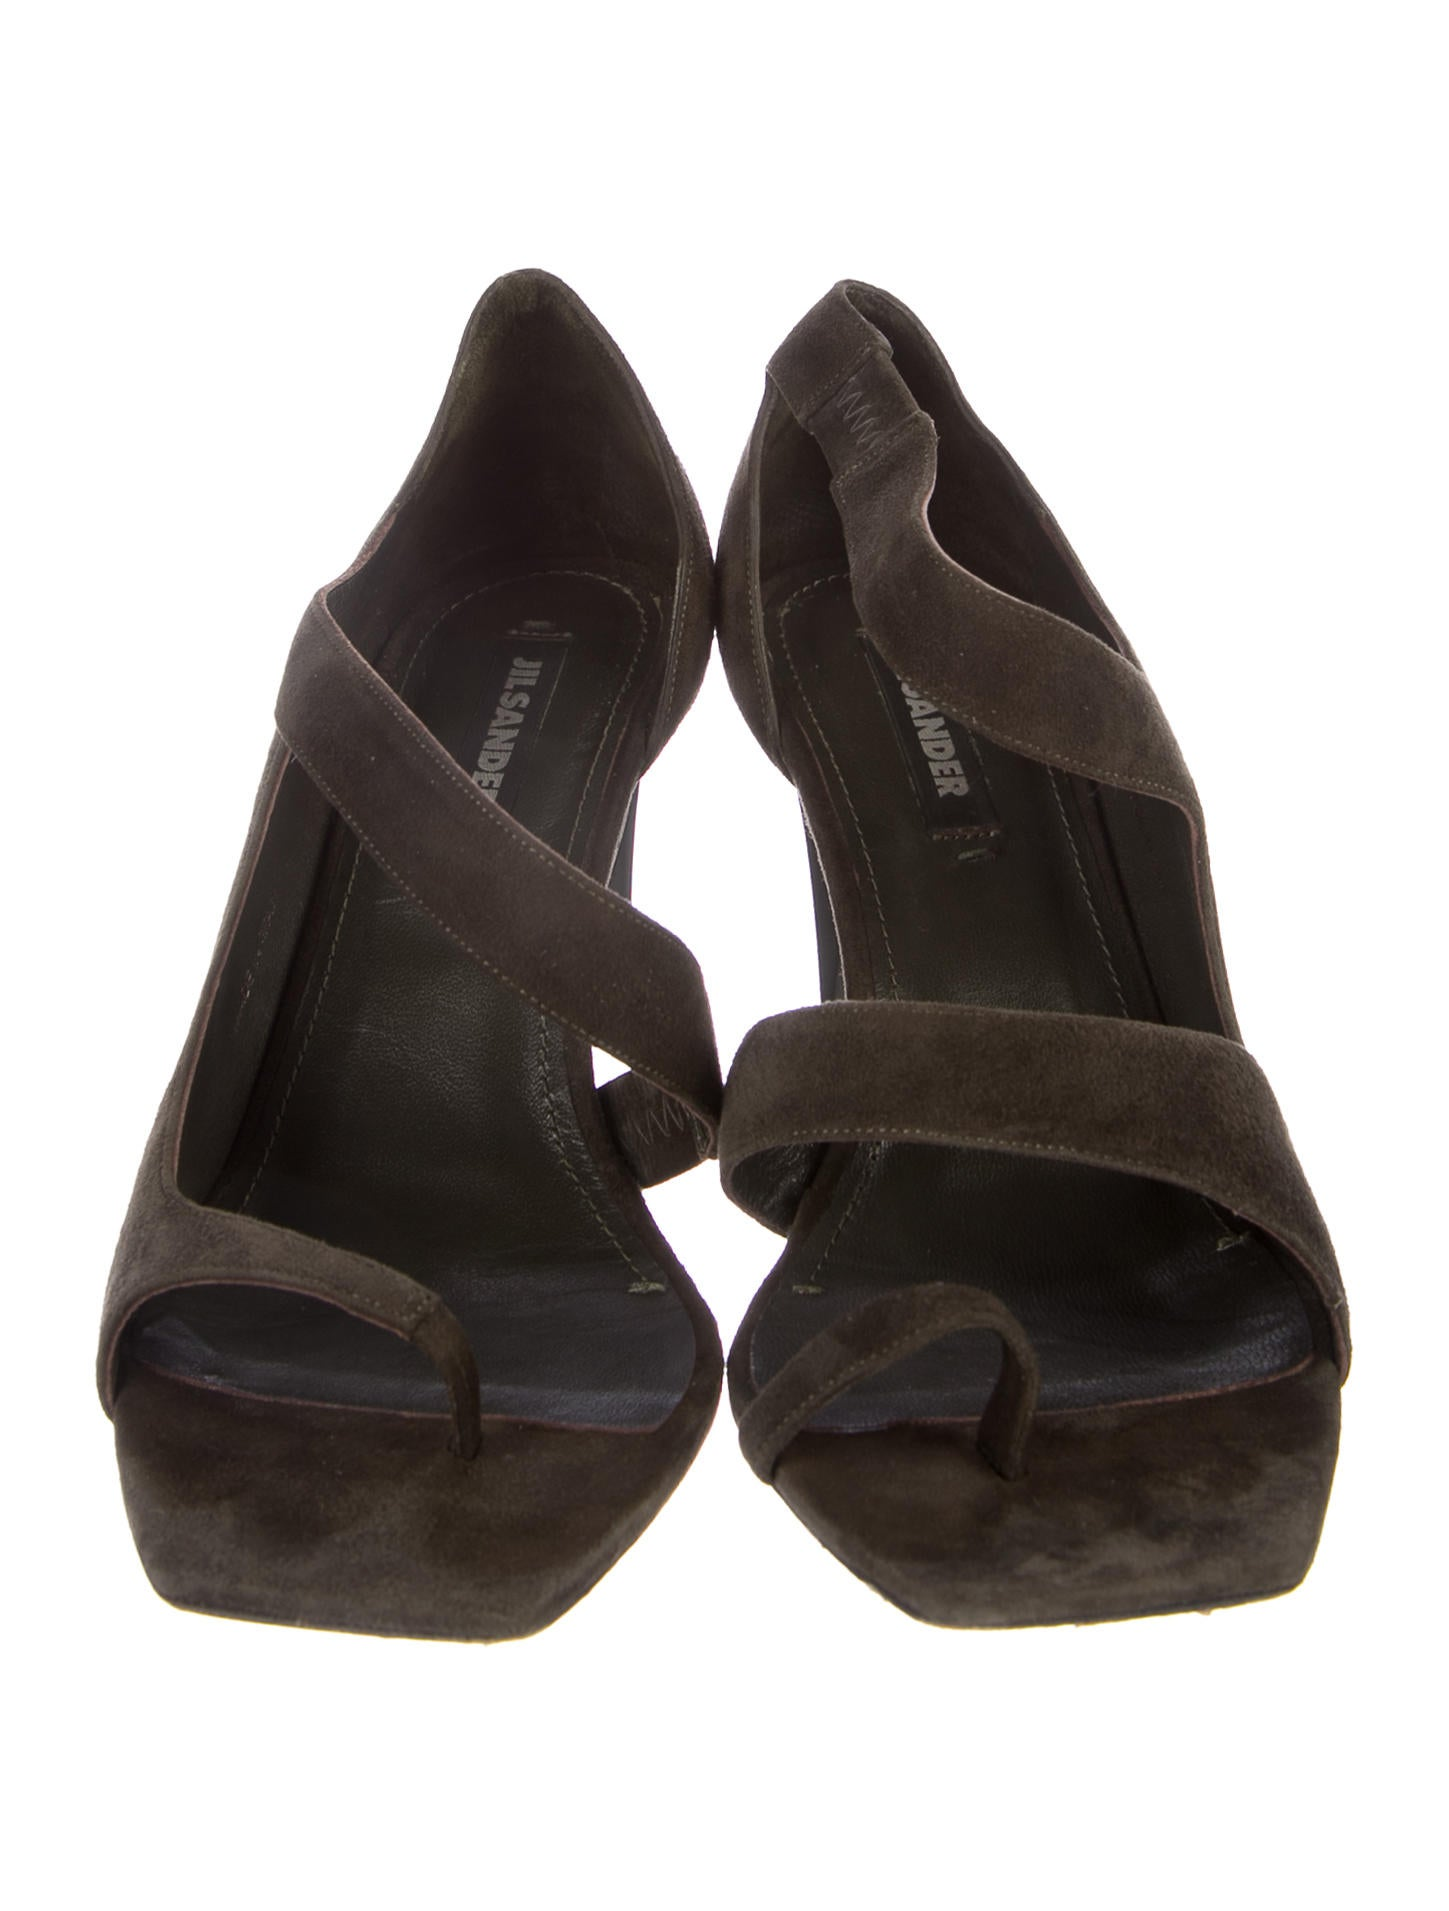 100% guaranteed cheap price Jil Sander Suede Square-Toe Sandals online cheap quality Njvc6R